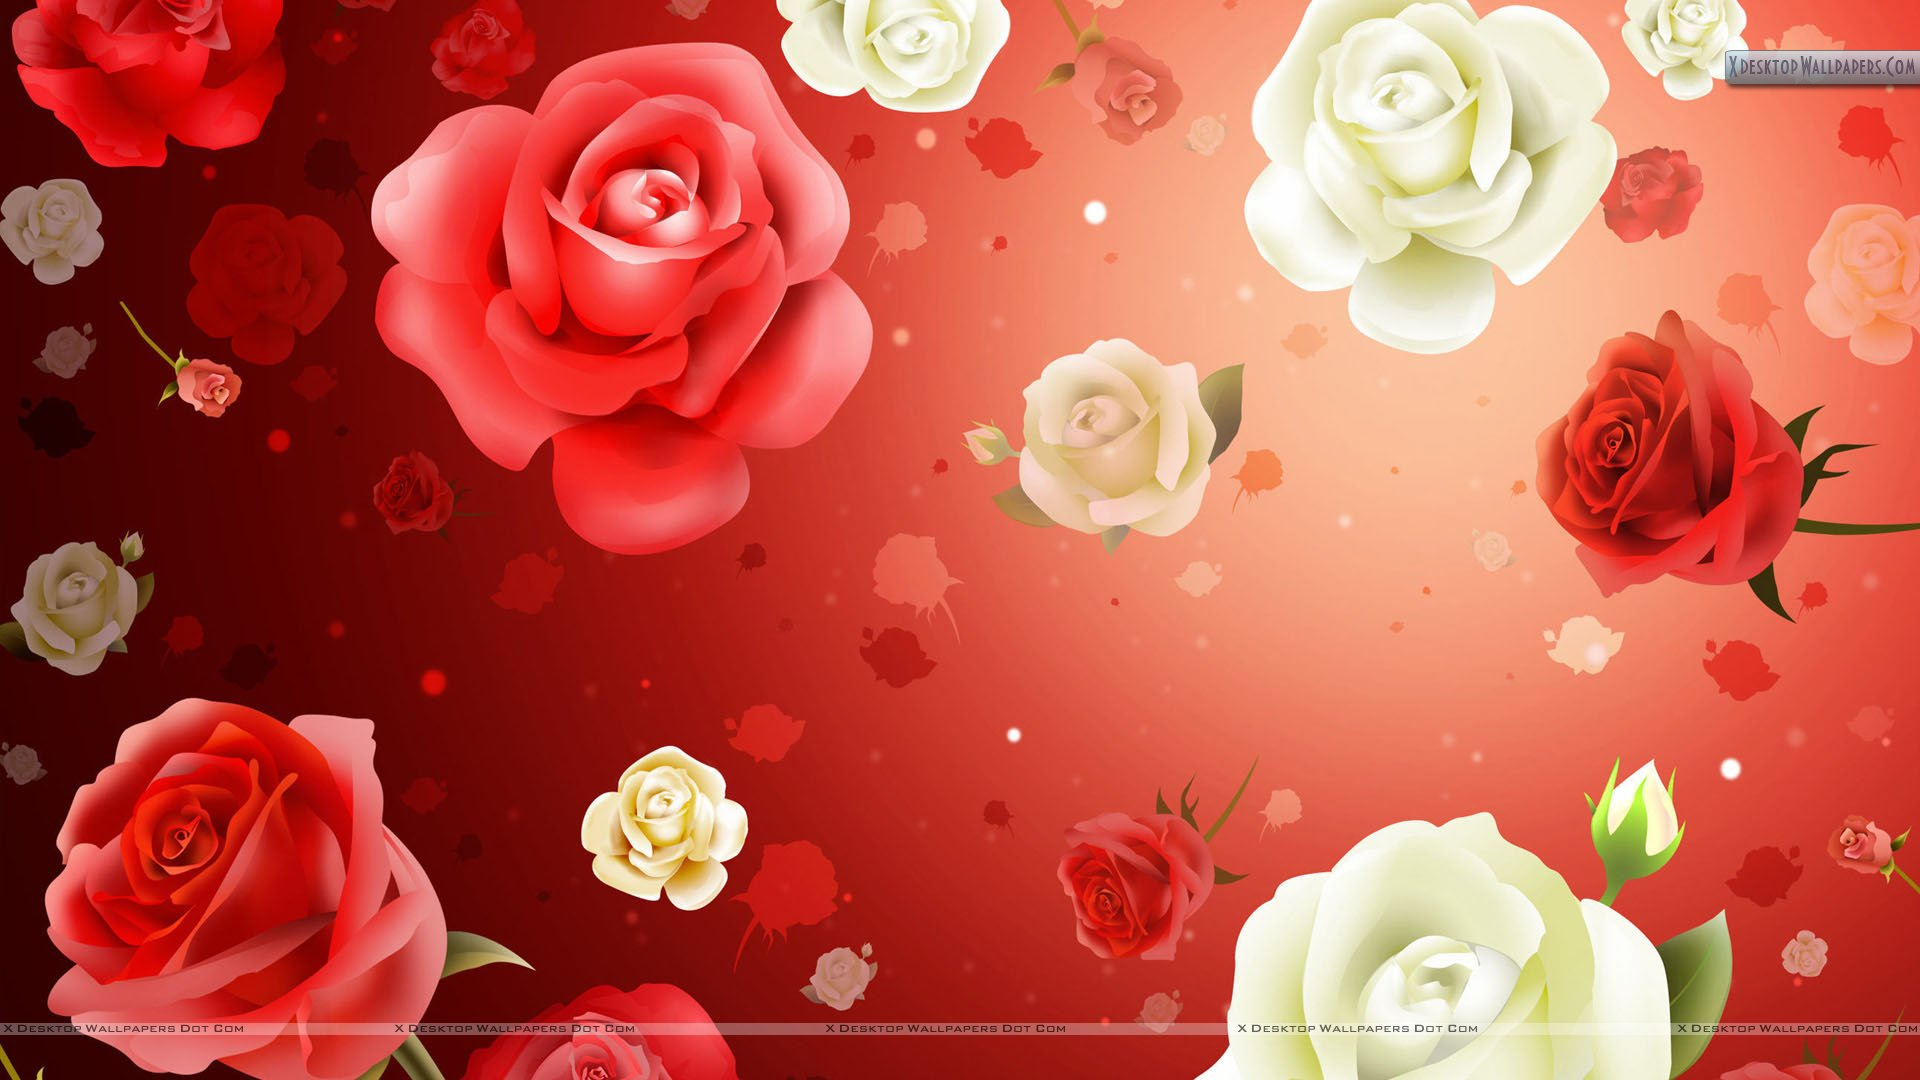 Roses wallpaper 264356 - Valentine s day flower wallpaper ...